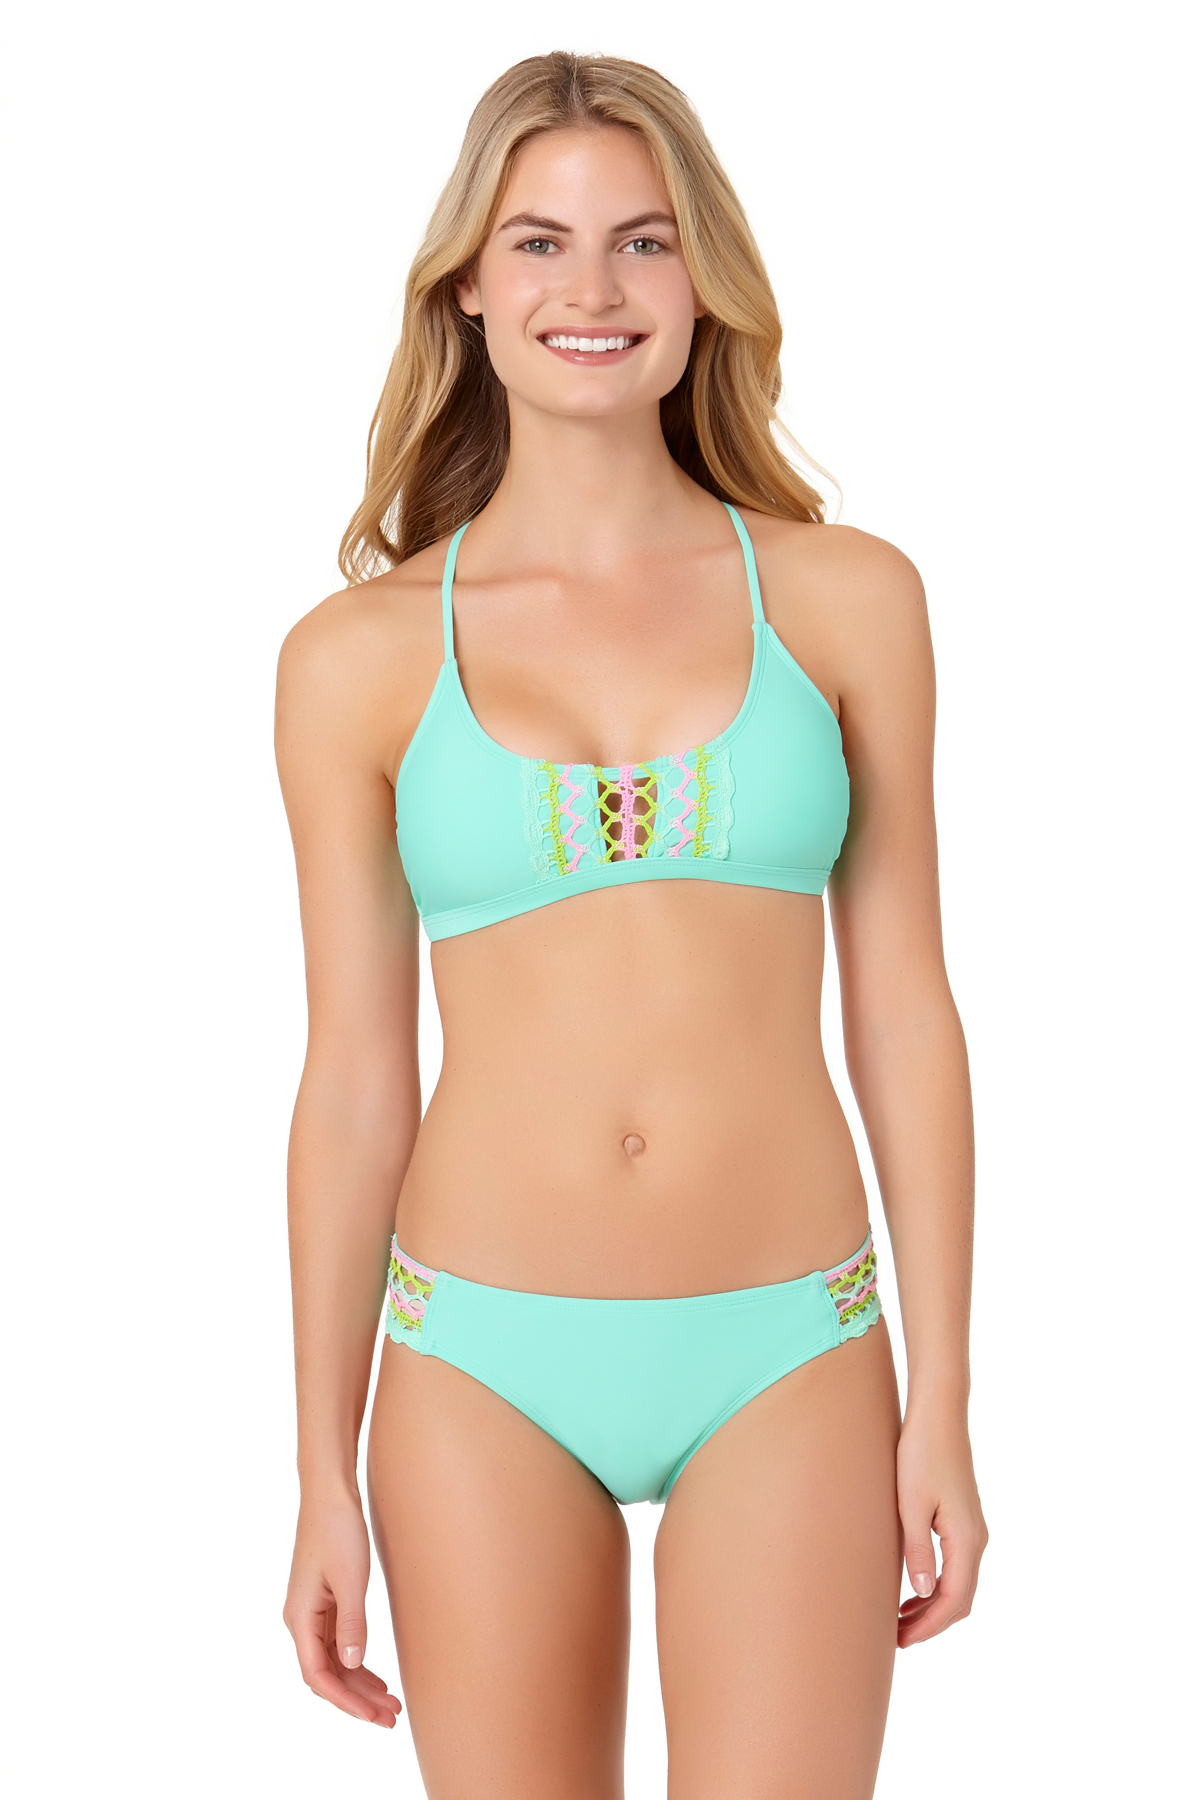 InMocean Juniors Lacer Tag Strappy Side Hipster Swim Bottom